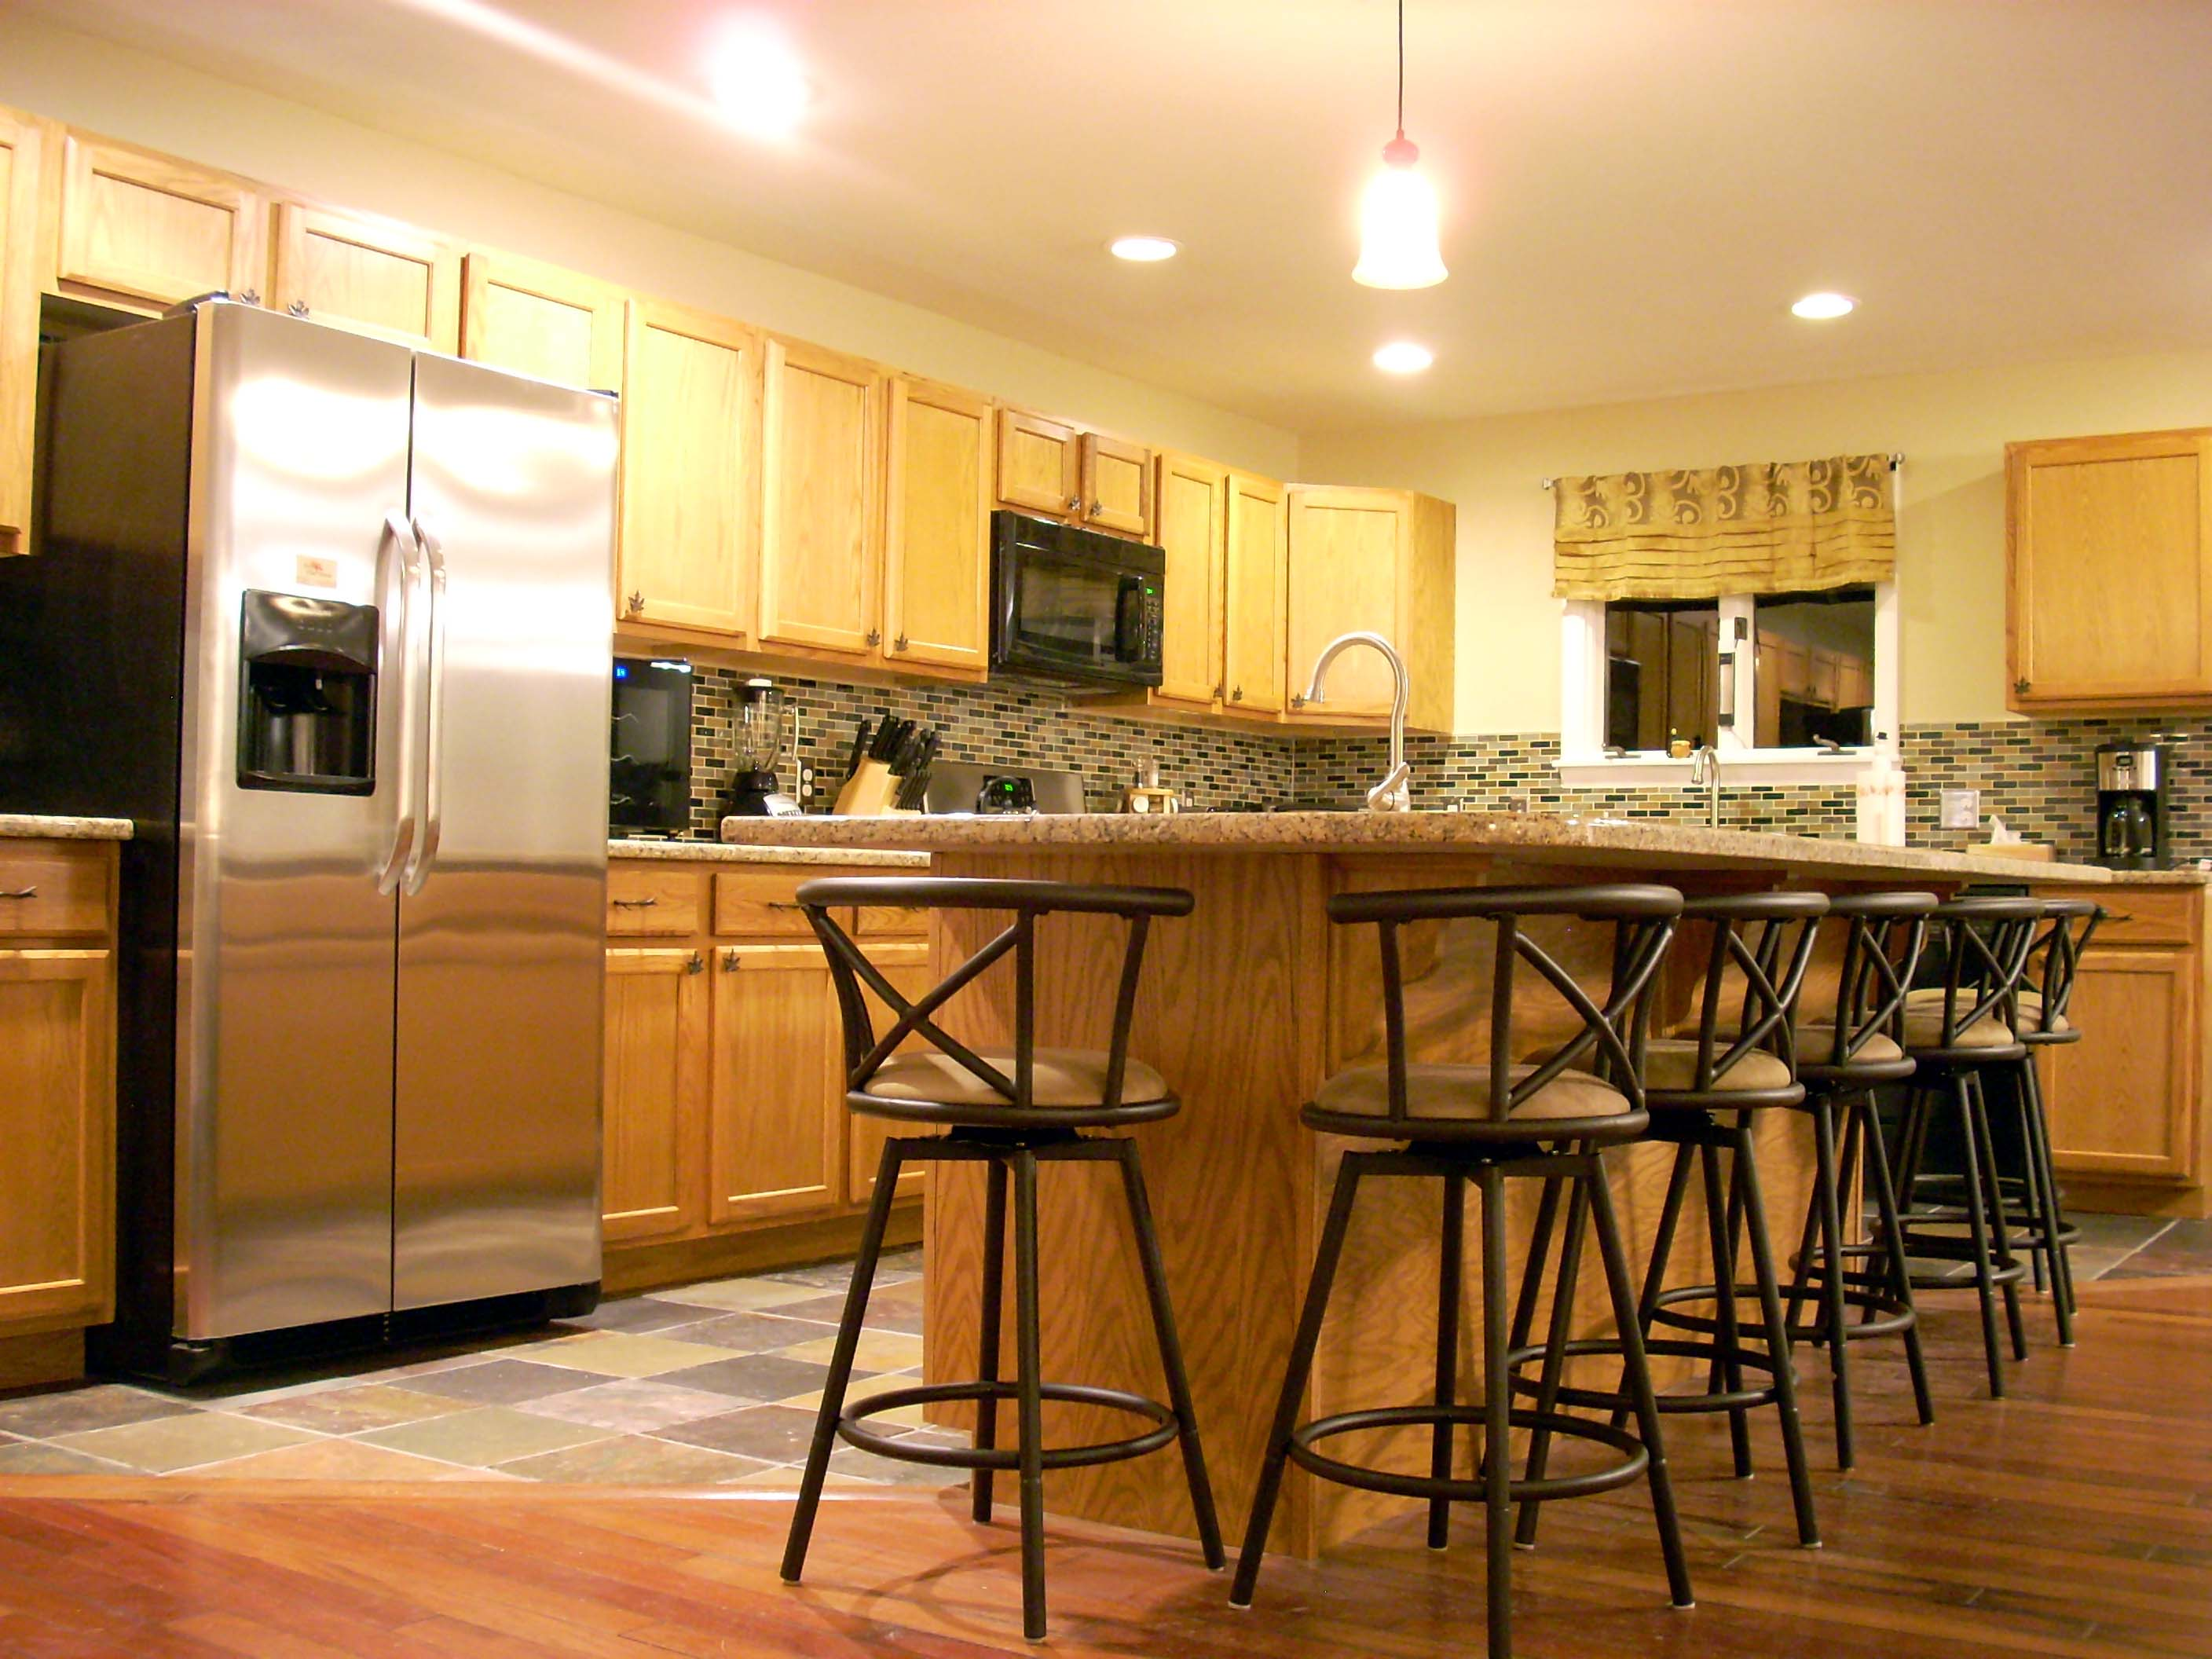 kitchen has bar seating for 8, fridge w/filtered ice/water,